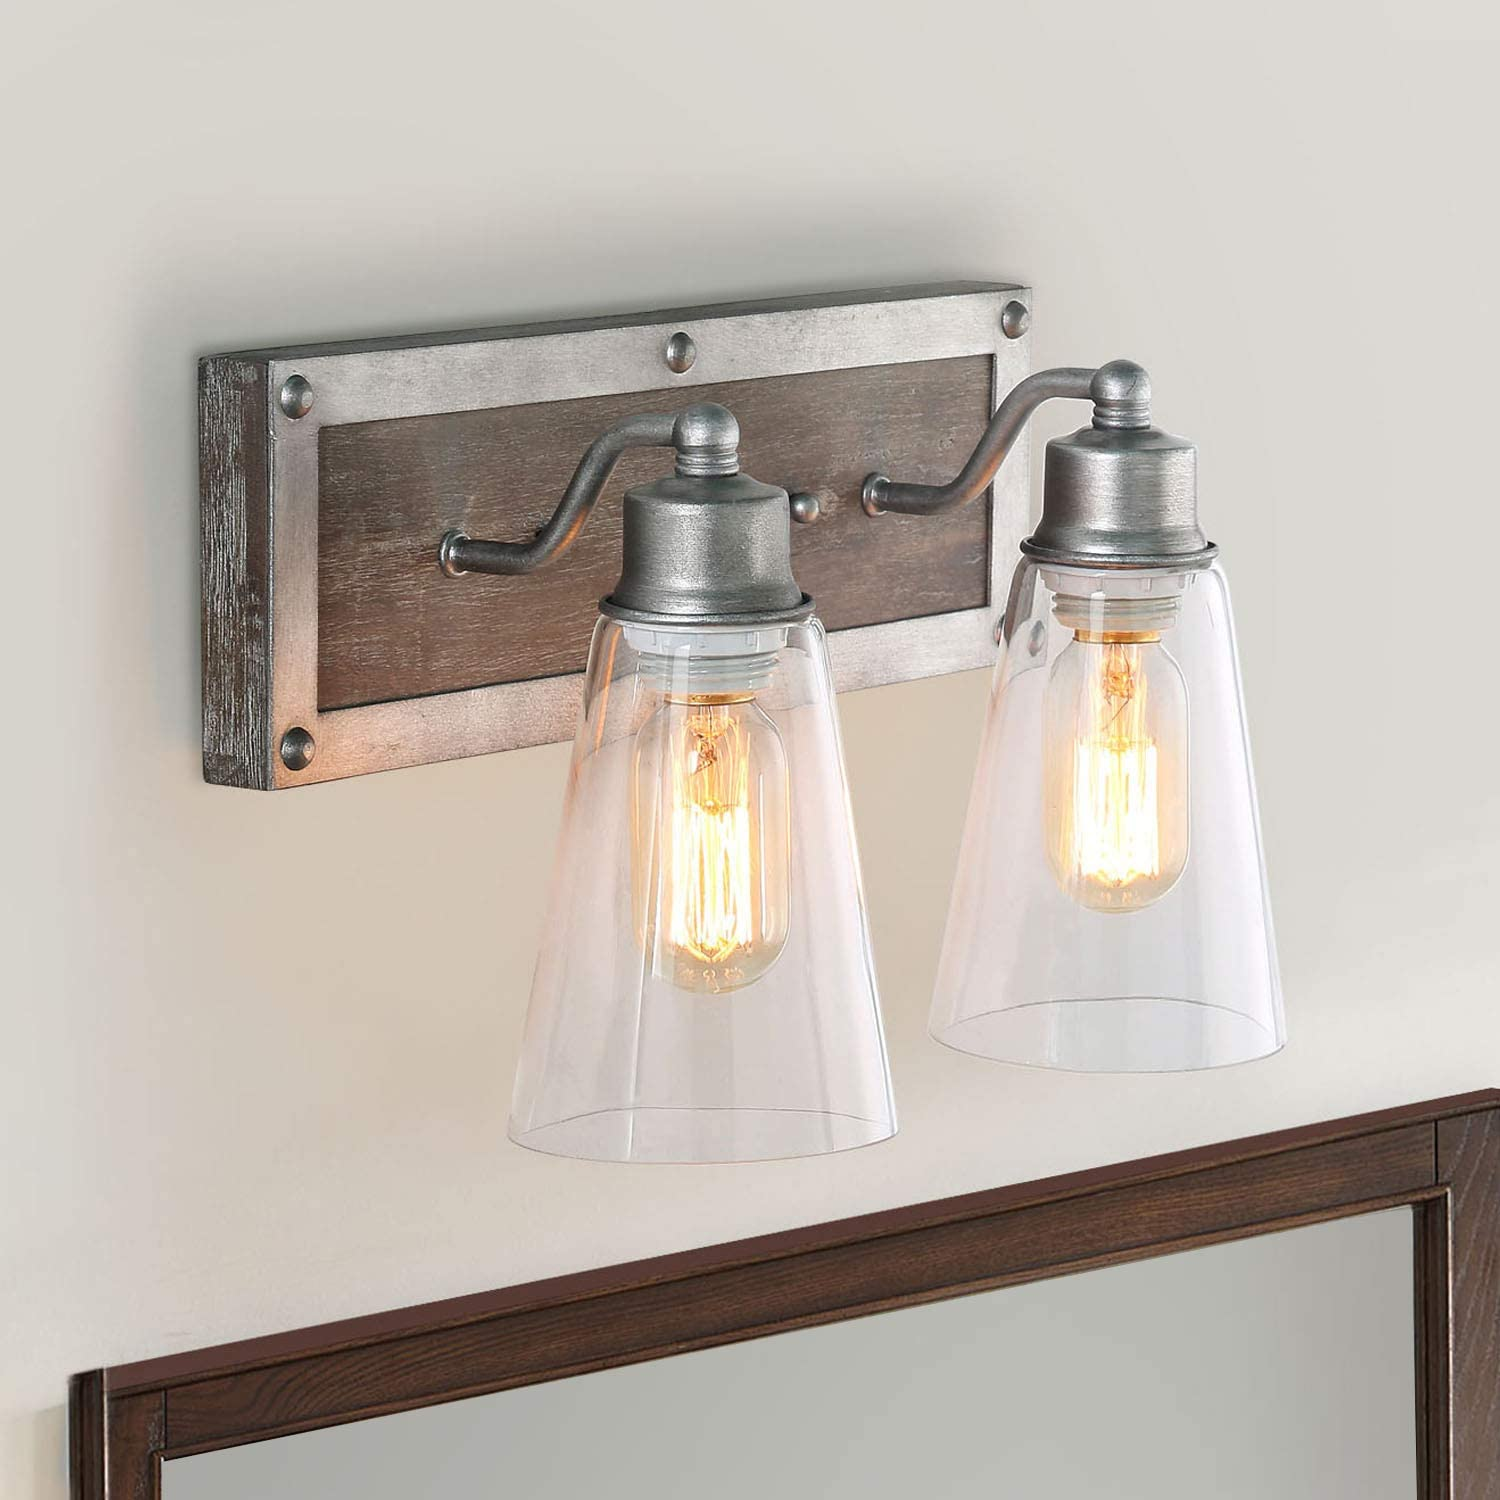 Amazon Com Log Barn 2 Lights Bathroom Lighting In Real Distressed Wood And Brushed Antique Silver Finish With Cone Clear Glass Shades 14 1 Vanity Light Fixture Home Kitchen